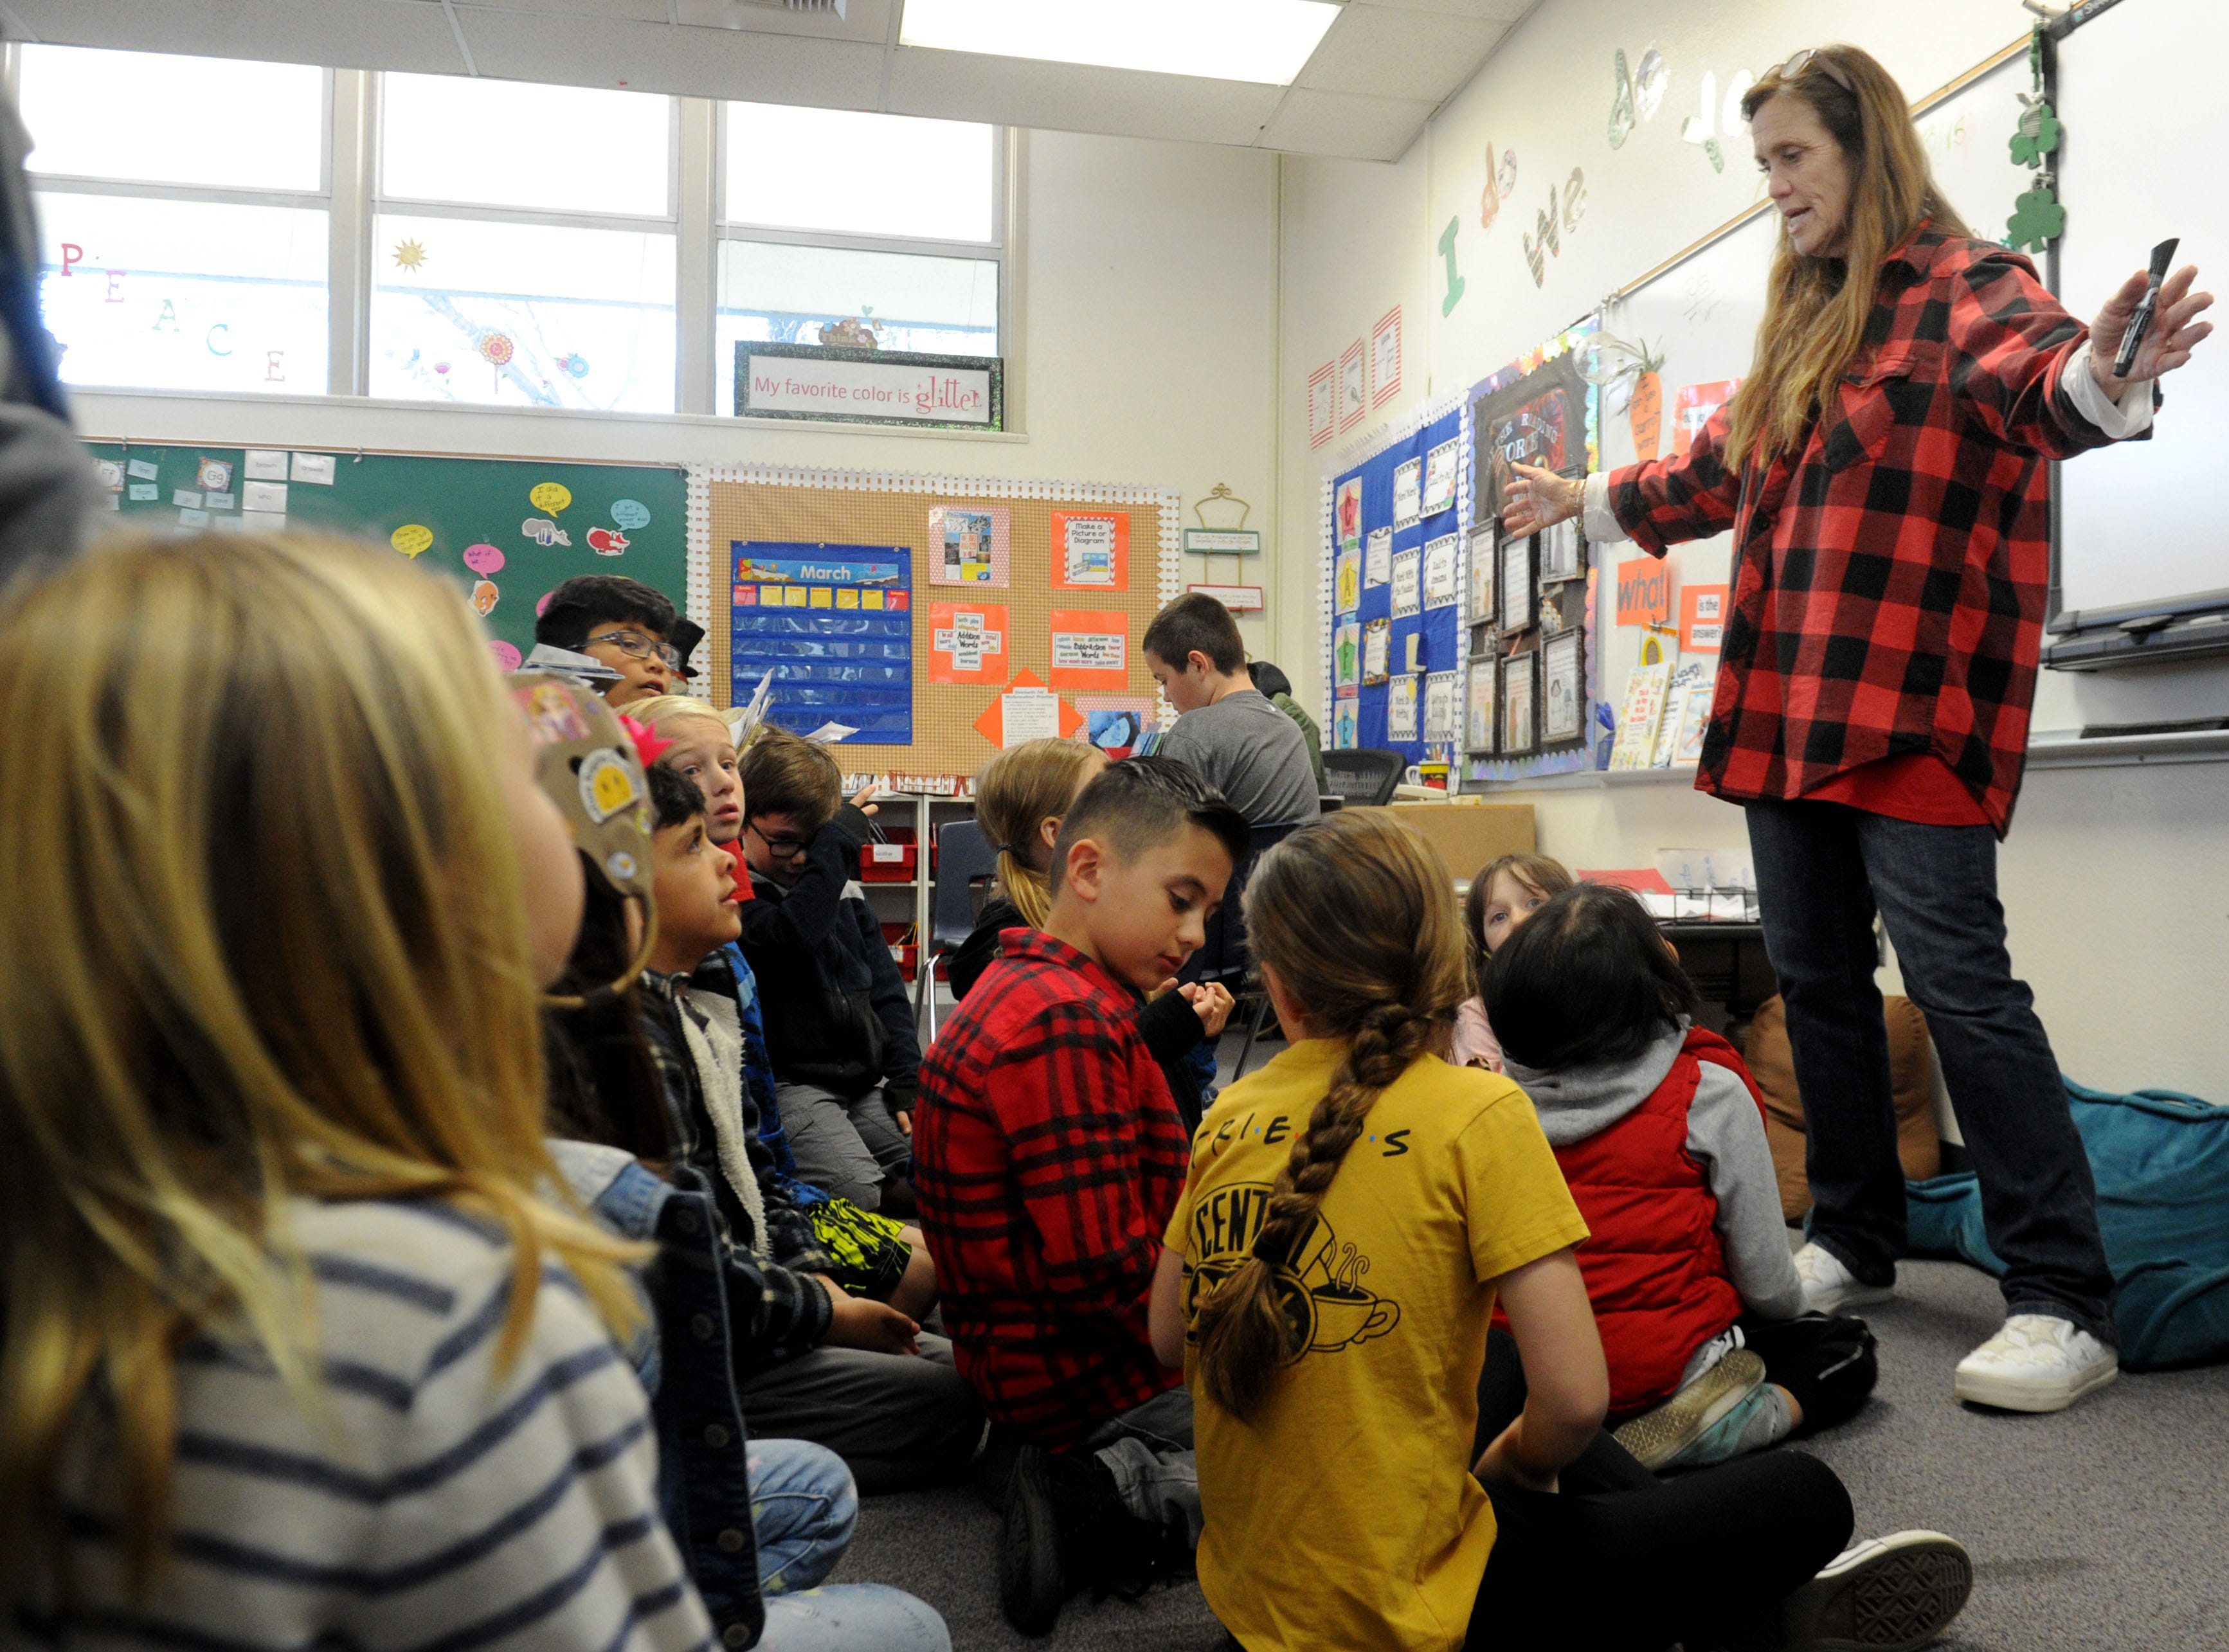 Jodi Atkinson, a second-grade teacher at Camarillo Heights School, works with her students. Atkinson also attended the school as a student.